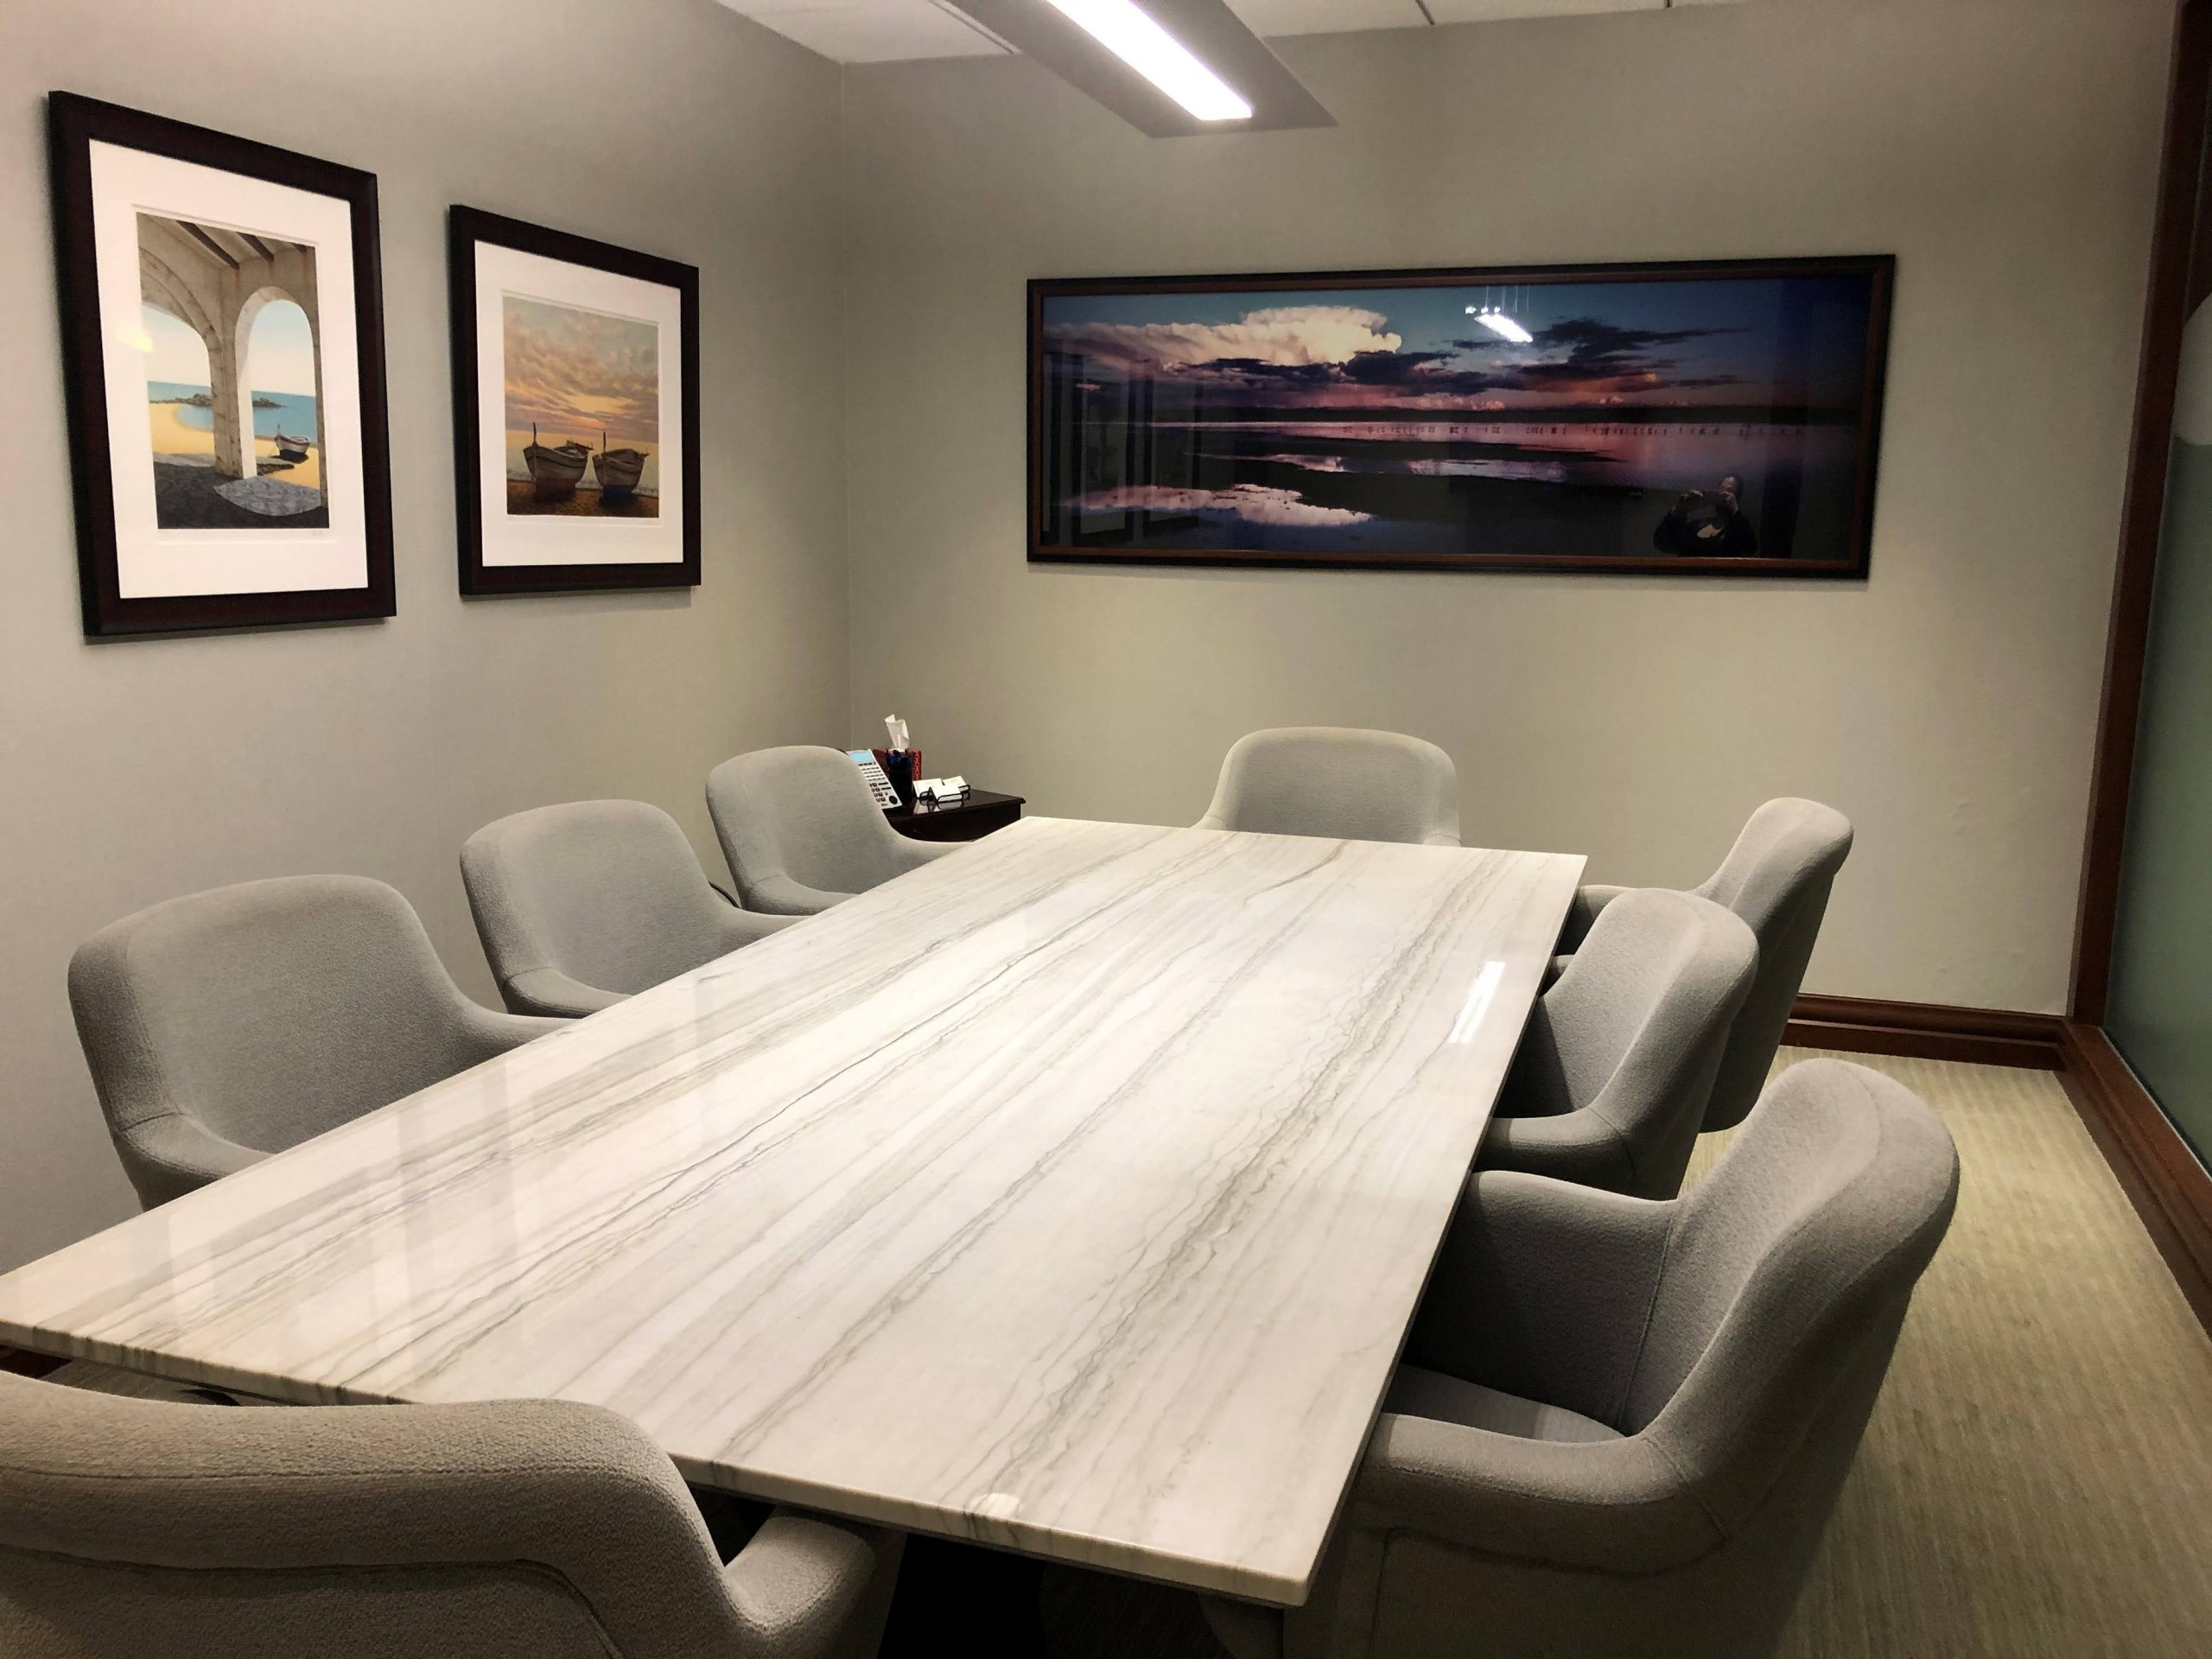 12 ft Granite Conference table